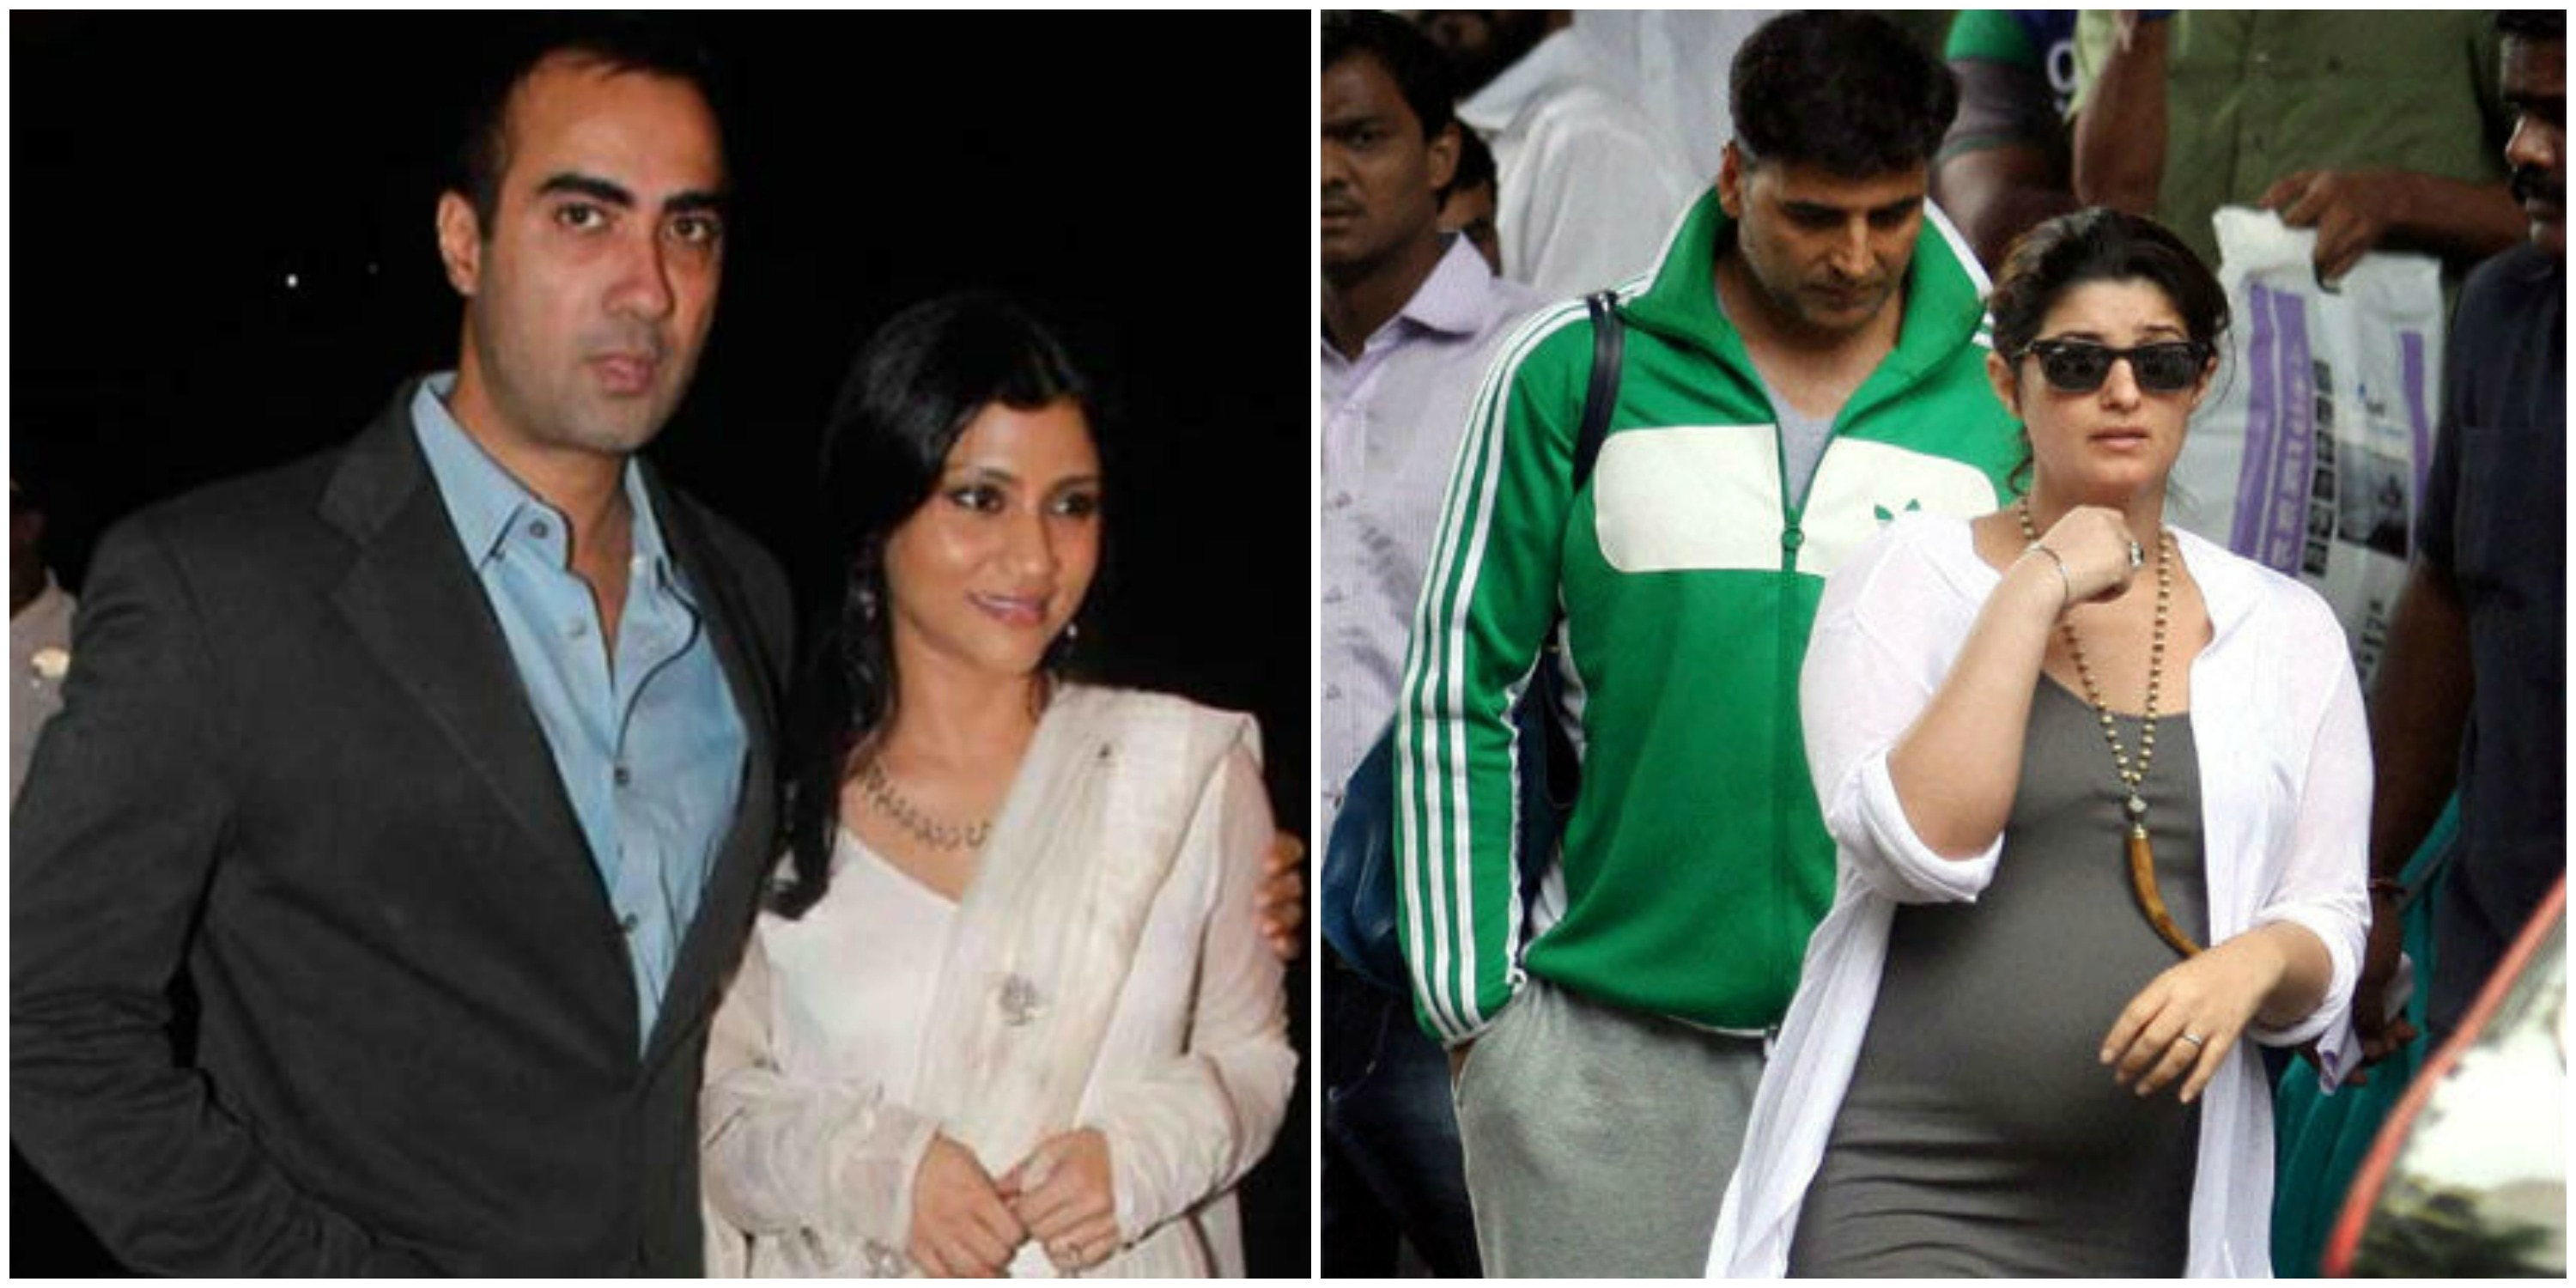 11 Celebrities Who Were Pregnant Before They Got Married